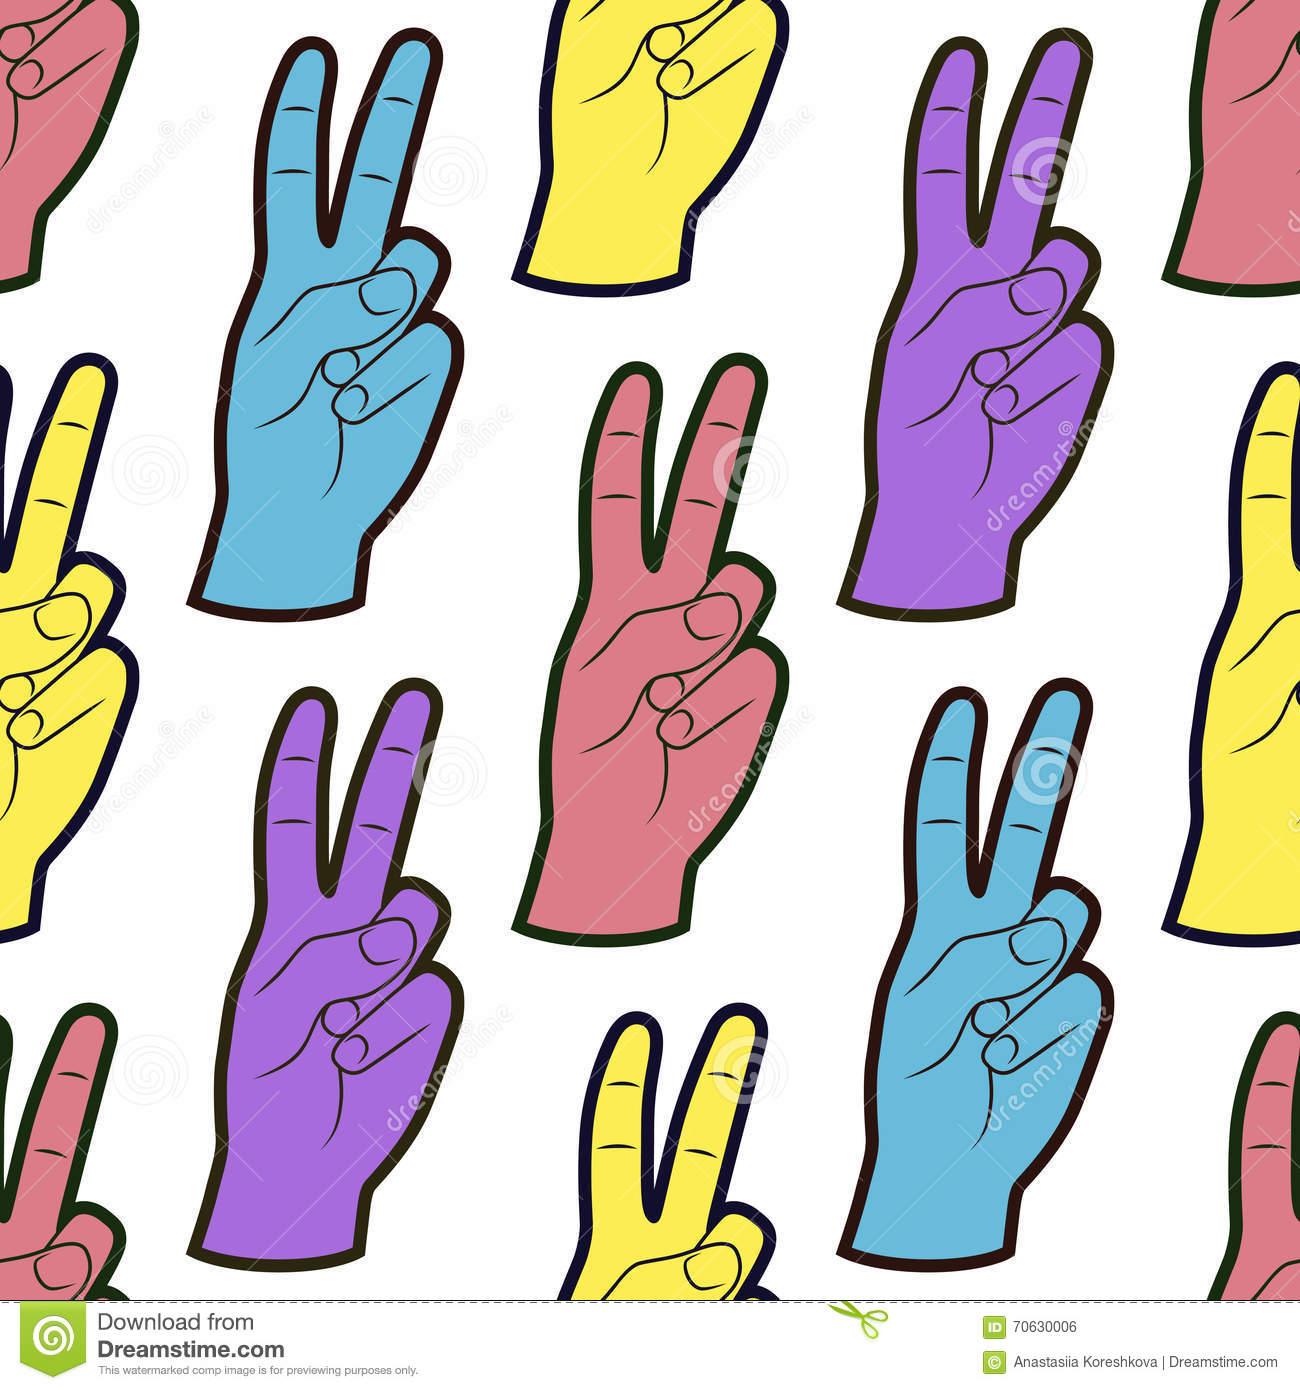 victory or peace symbol with hands royaltyfree stock